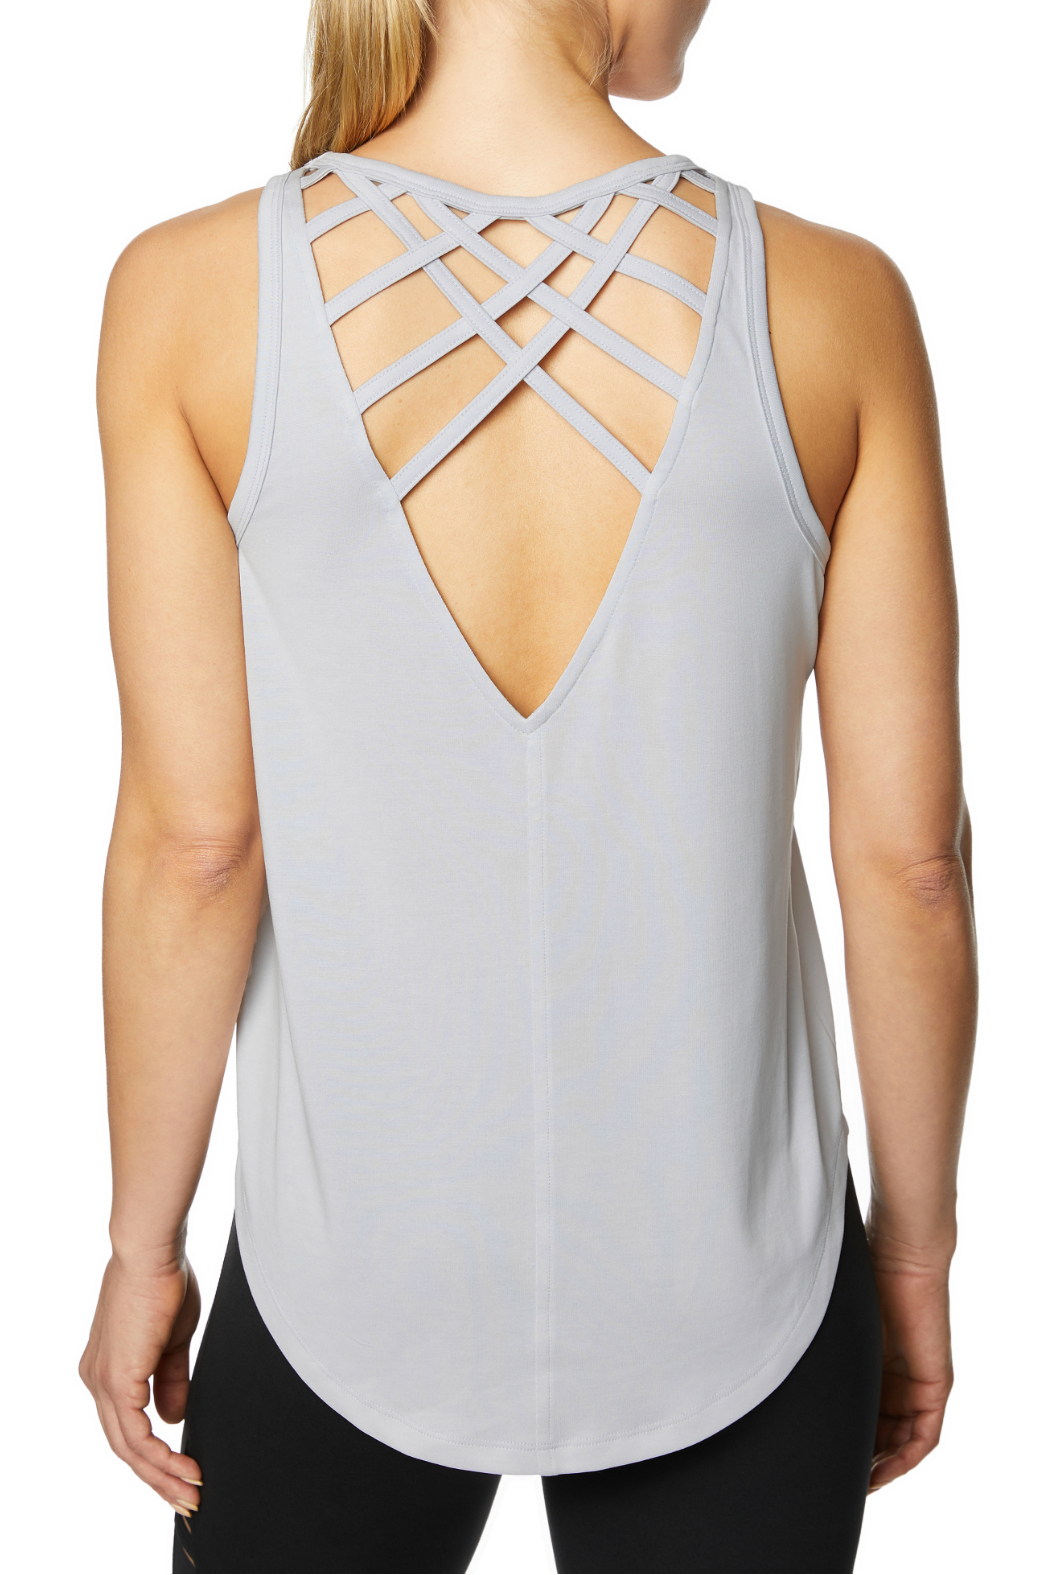 d30f7995eb3c3 Betsey Johnson Criss Cross Back Tank from New Jersey by Charlotte s ...